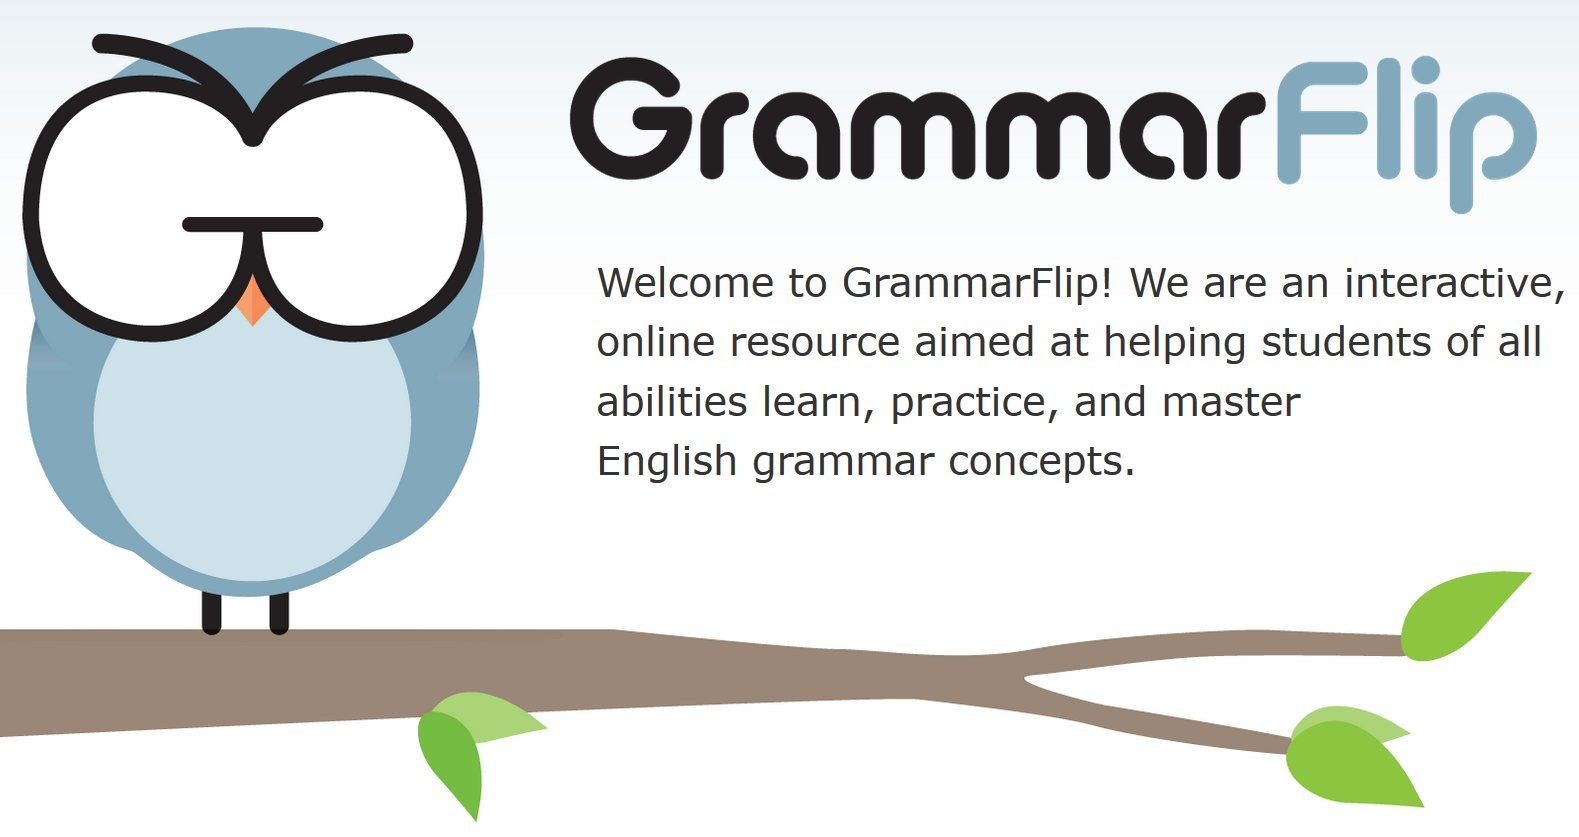 Learn from over 60 instructional videos at GrammarFlip! #edchat #engchat #ukedchat #langchat #grammar #edcamphisd #edcampmdlc #edcampcobb https://t.co/wBDl4uFGqV